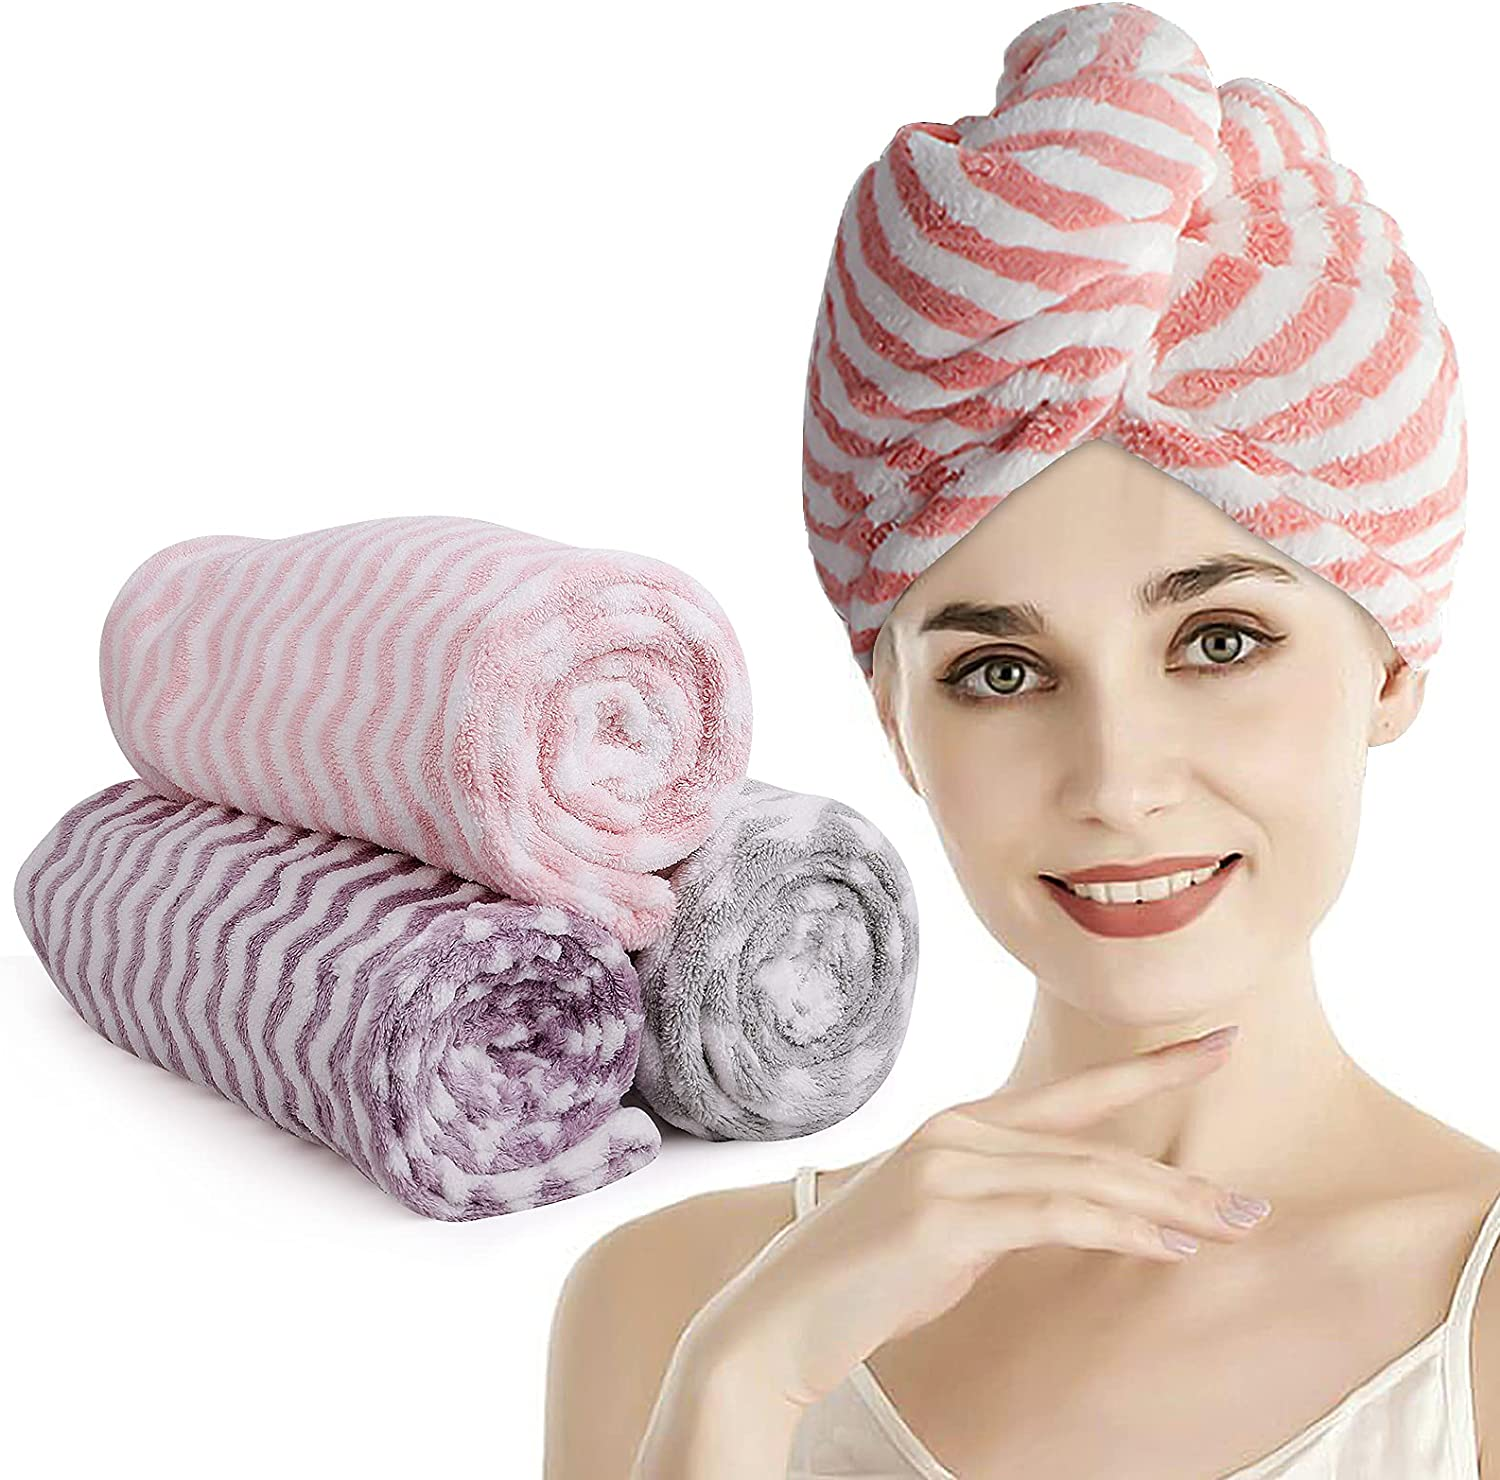 3 Pack Gifts Microfiber Store Hair Towels Tur for Absorbent Women Super